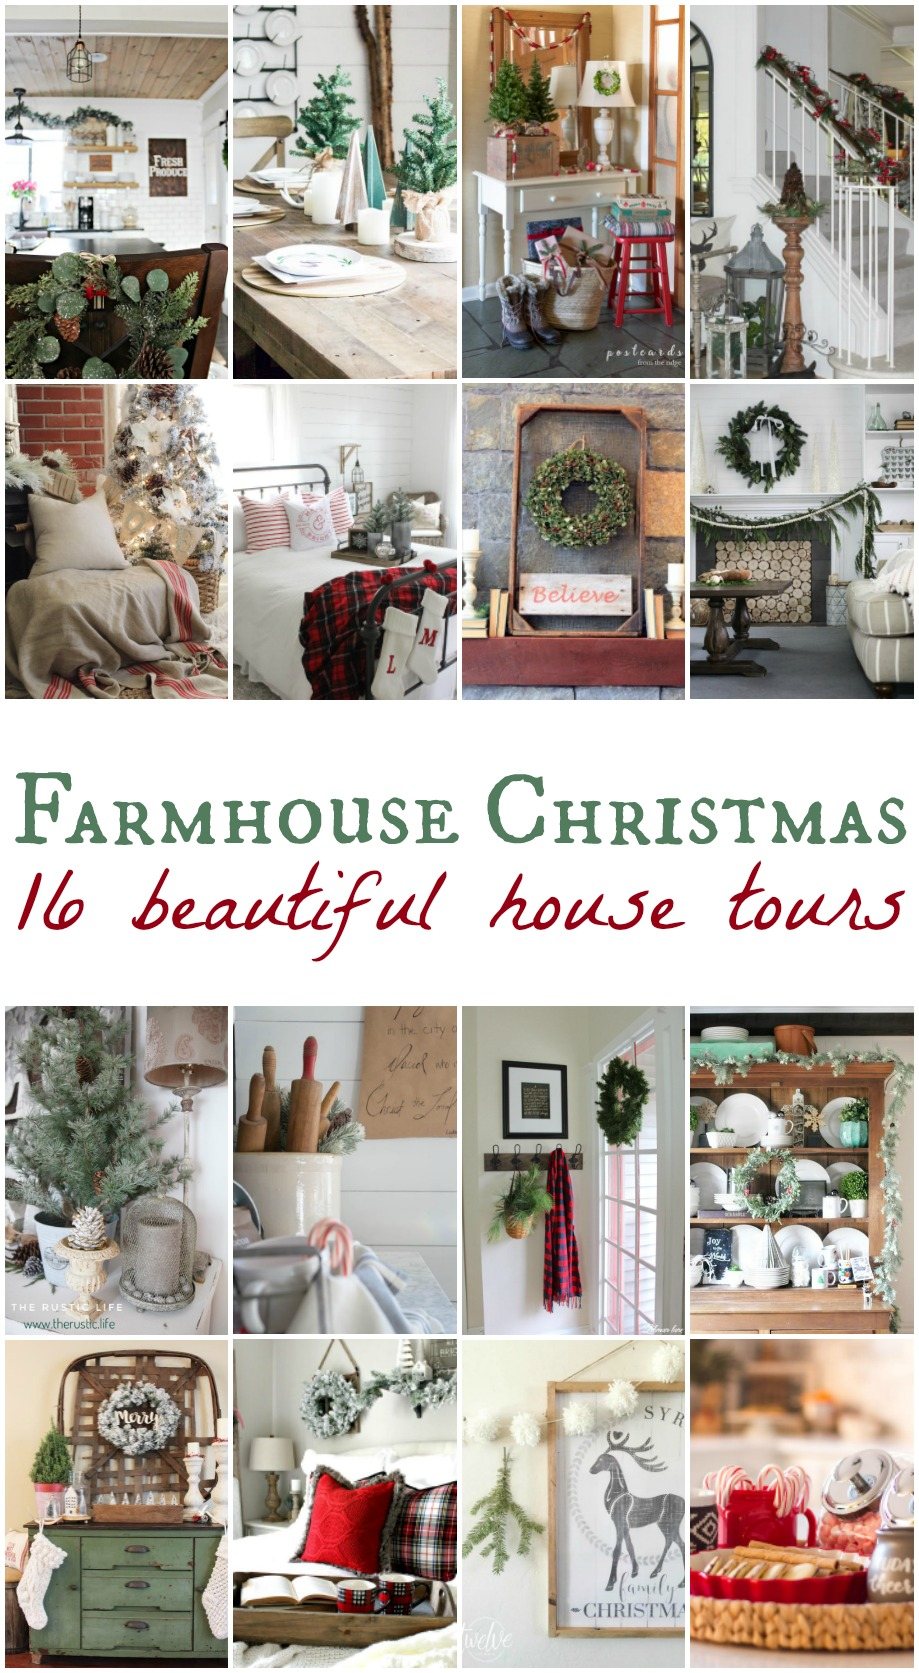 A Very Farmhouse Christmas Home Tour - 16 Bloggers Welcome You - Life on Kaydeross Creek